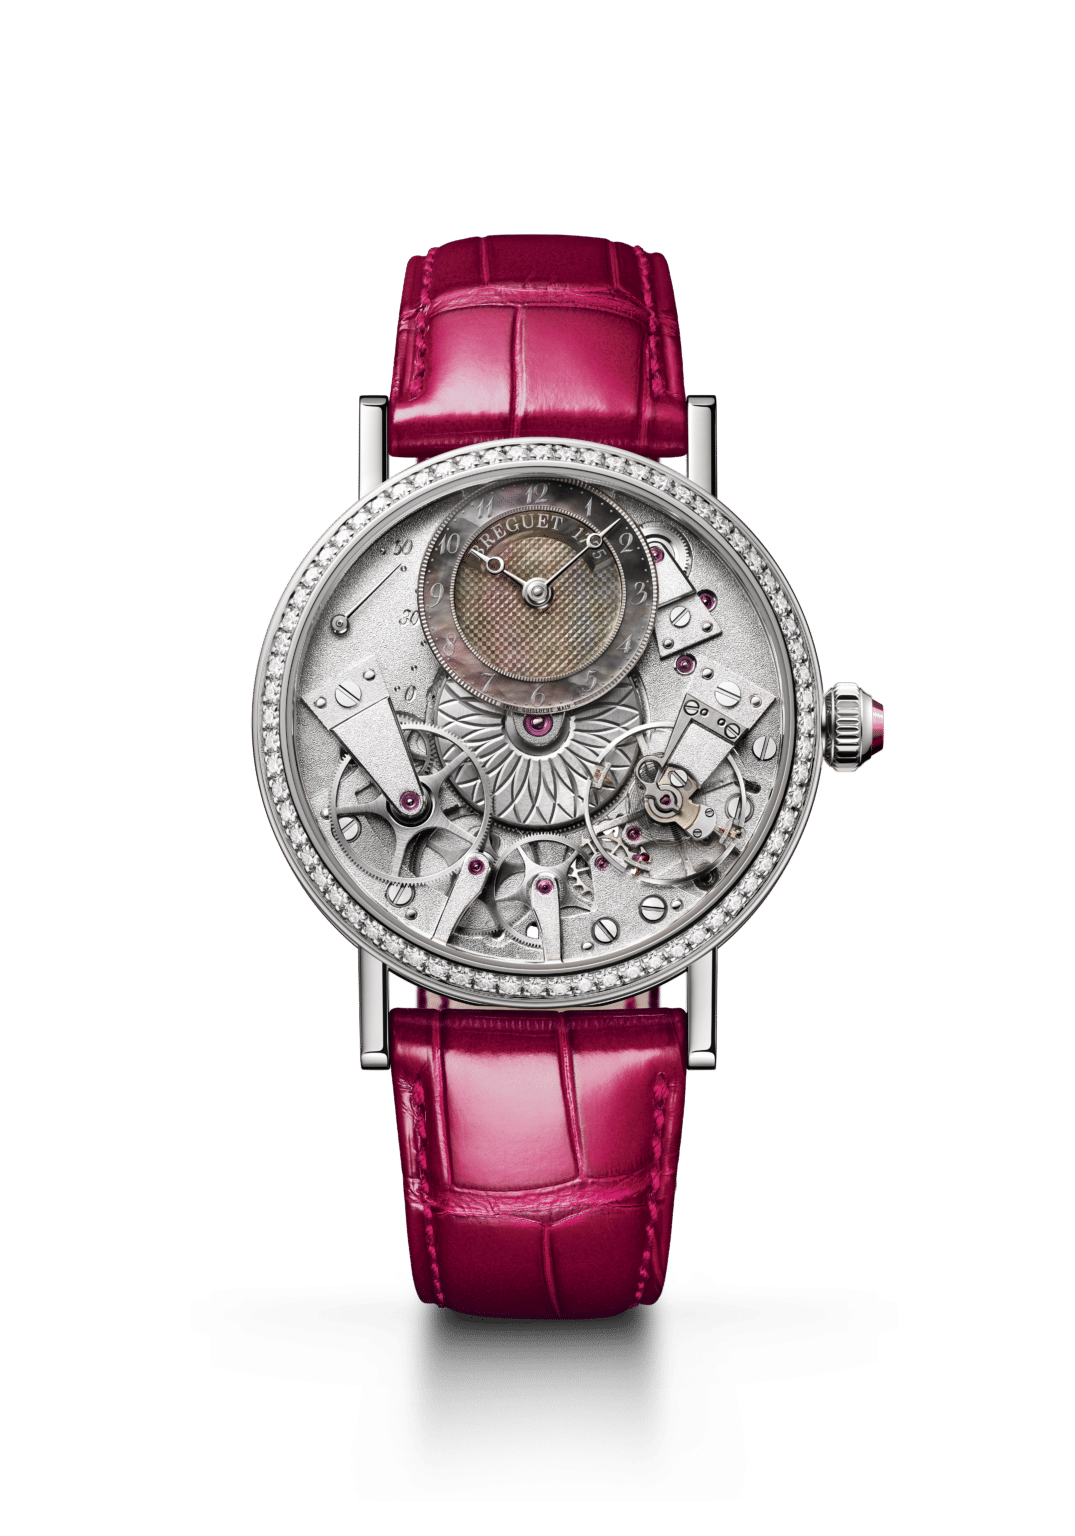 Breguet – Tradition – Tradition Lady - Wagner Bijouterie Uhren